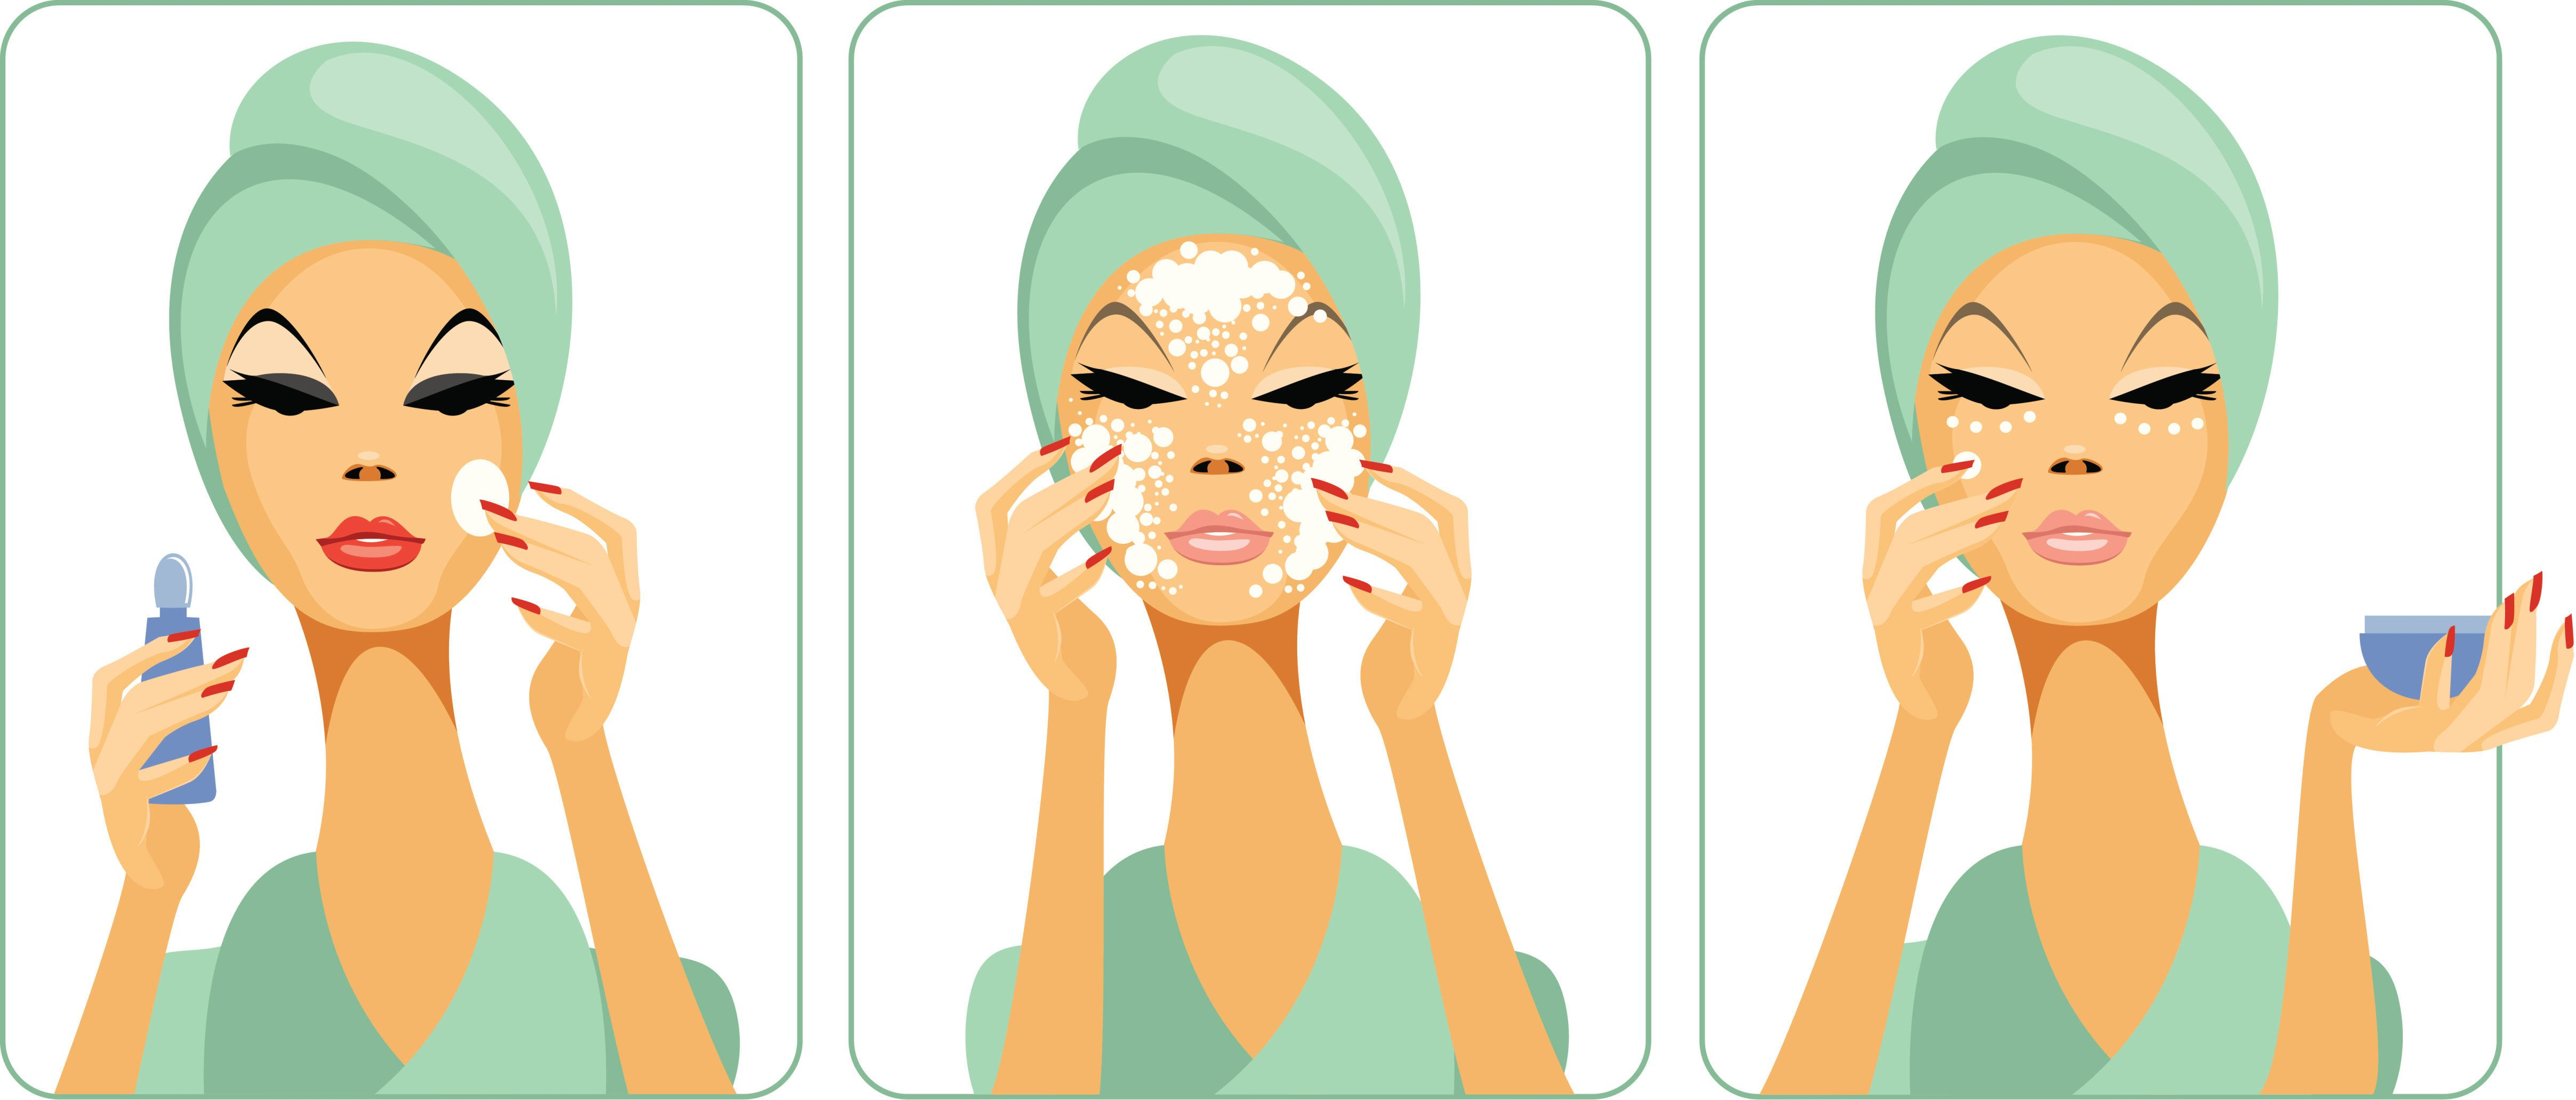 Be cautious of intense exfoliation in the springtime, as it can make your skin more sensitive to the upcoming increase in sun exposure.